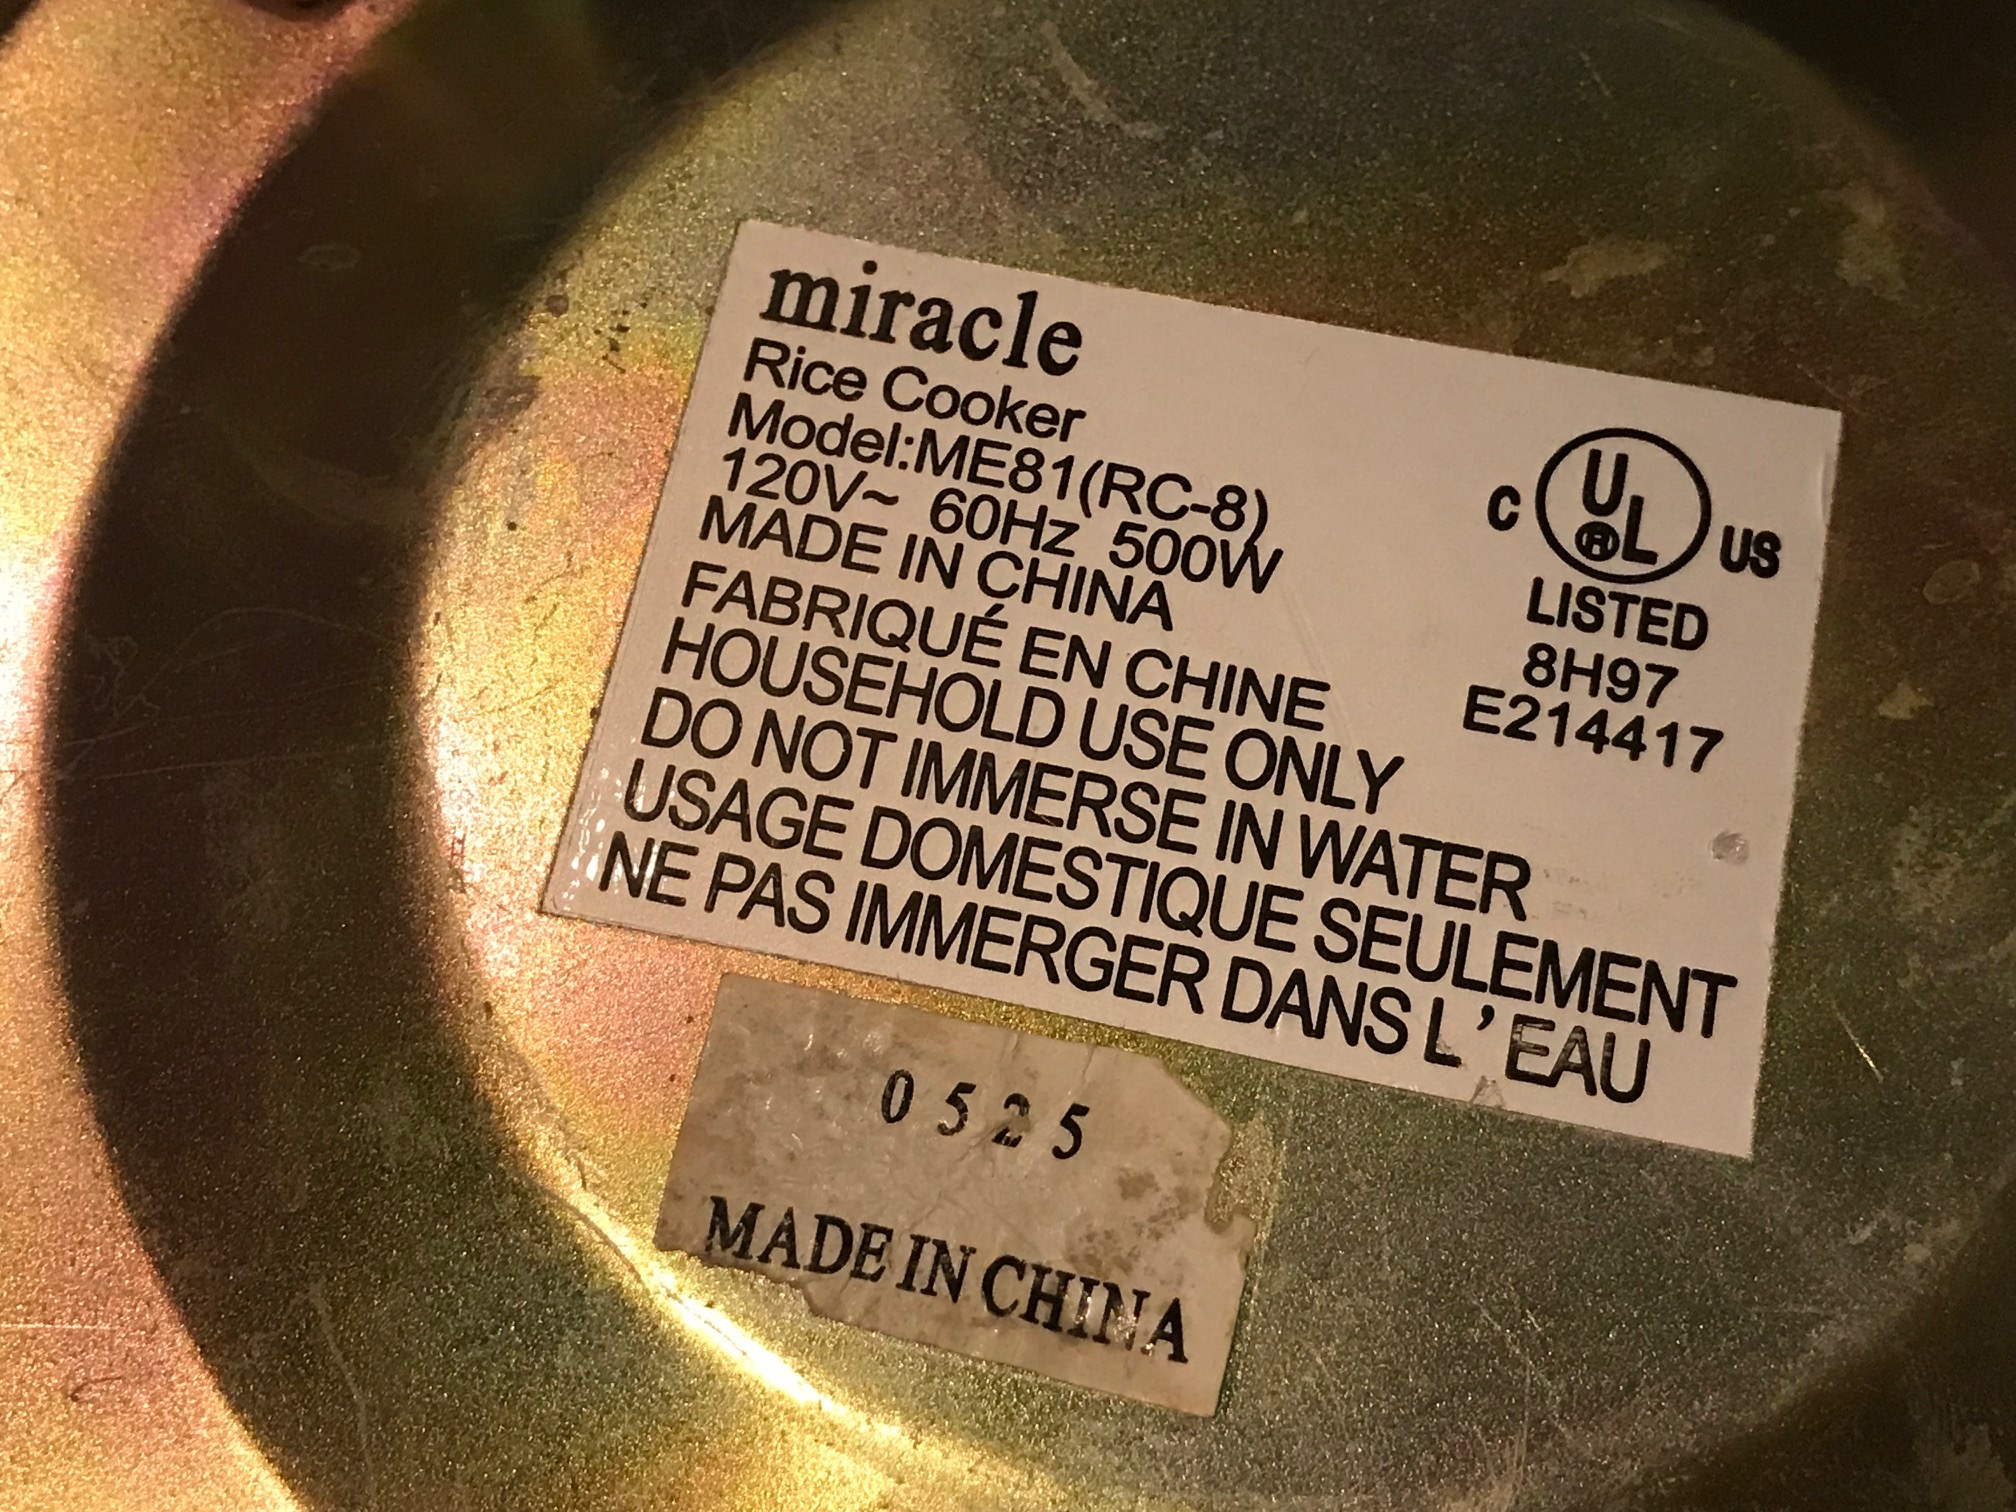 Miracle Rice Cooker c. 2009, Made In China